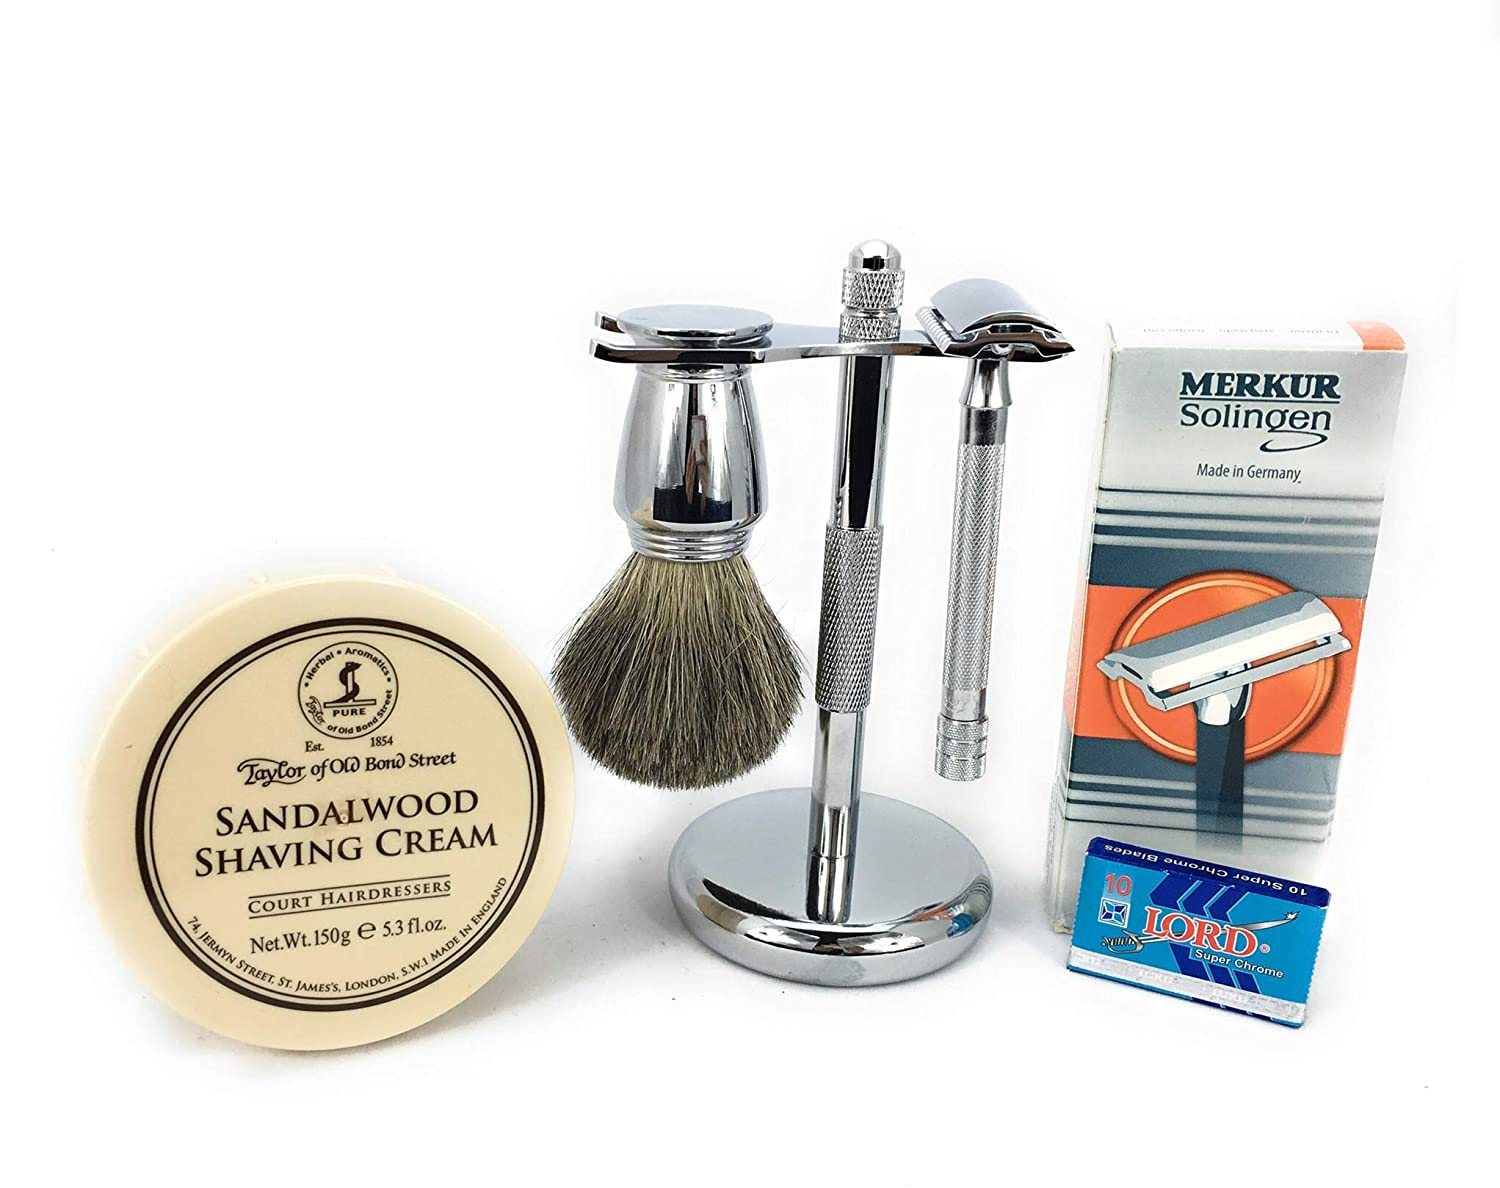 B00U7D349O GBS Shaving Gift Set Made in Soligen Germany MK Safety Razor Long Handle + Wet Shaving Badger Brush, Taylor Of Bond Street Shave Cream Bowl Stand and 10 Pack of Blades Holiday Christmas Gift 71IEujPss5L._SL1500_